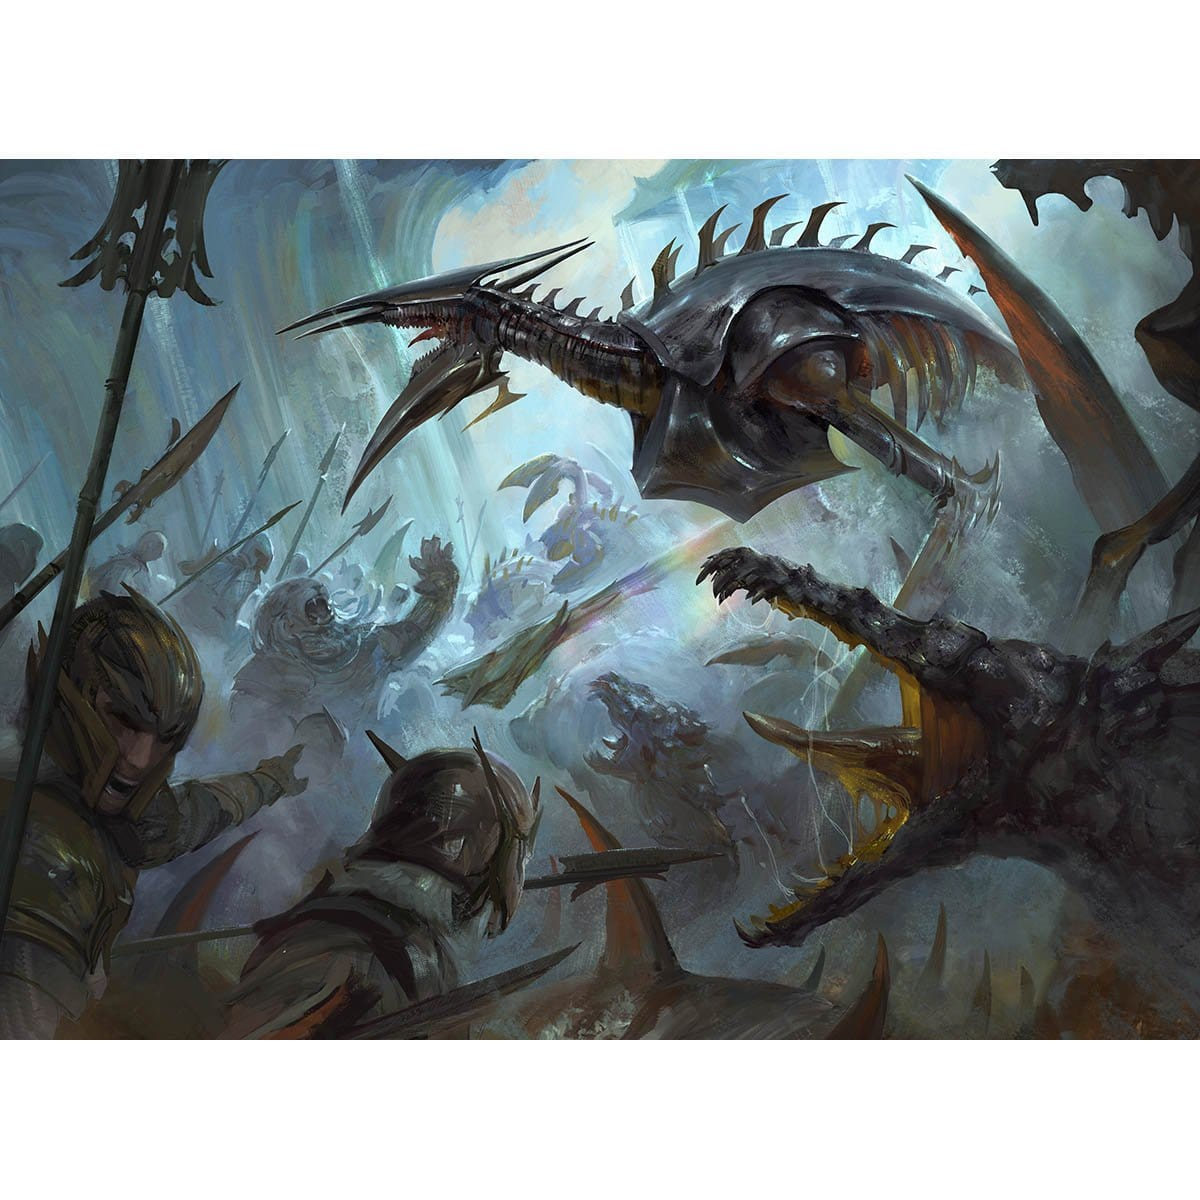 Mirrodin Besieged Print - Print - Original Magic Art - Accessories for Magic the Gathering and other card games